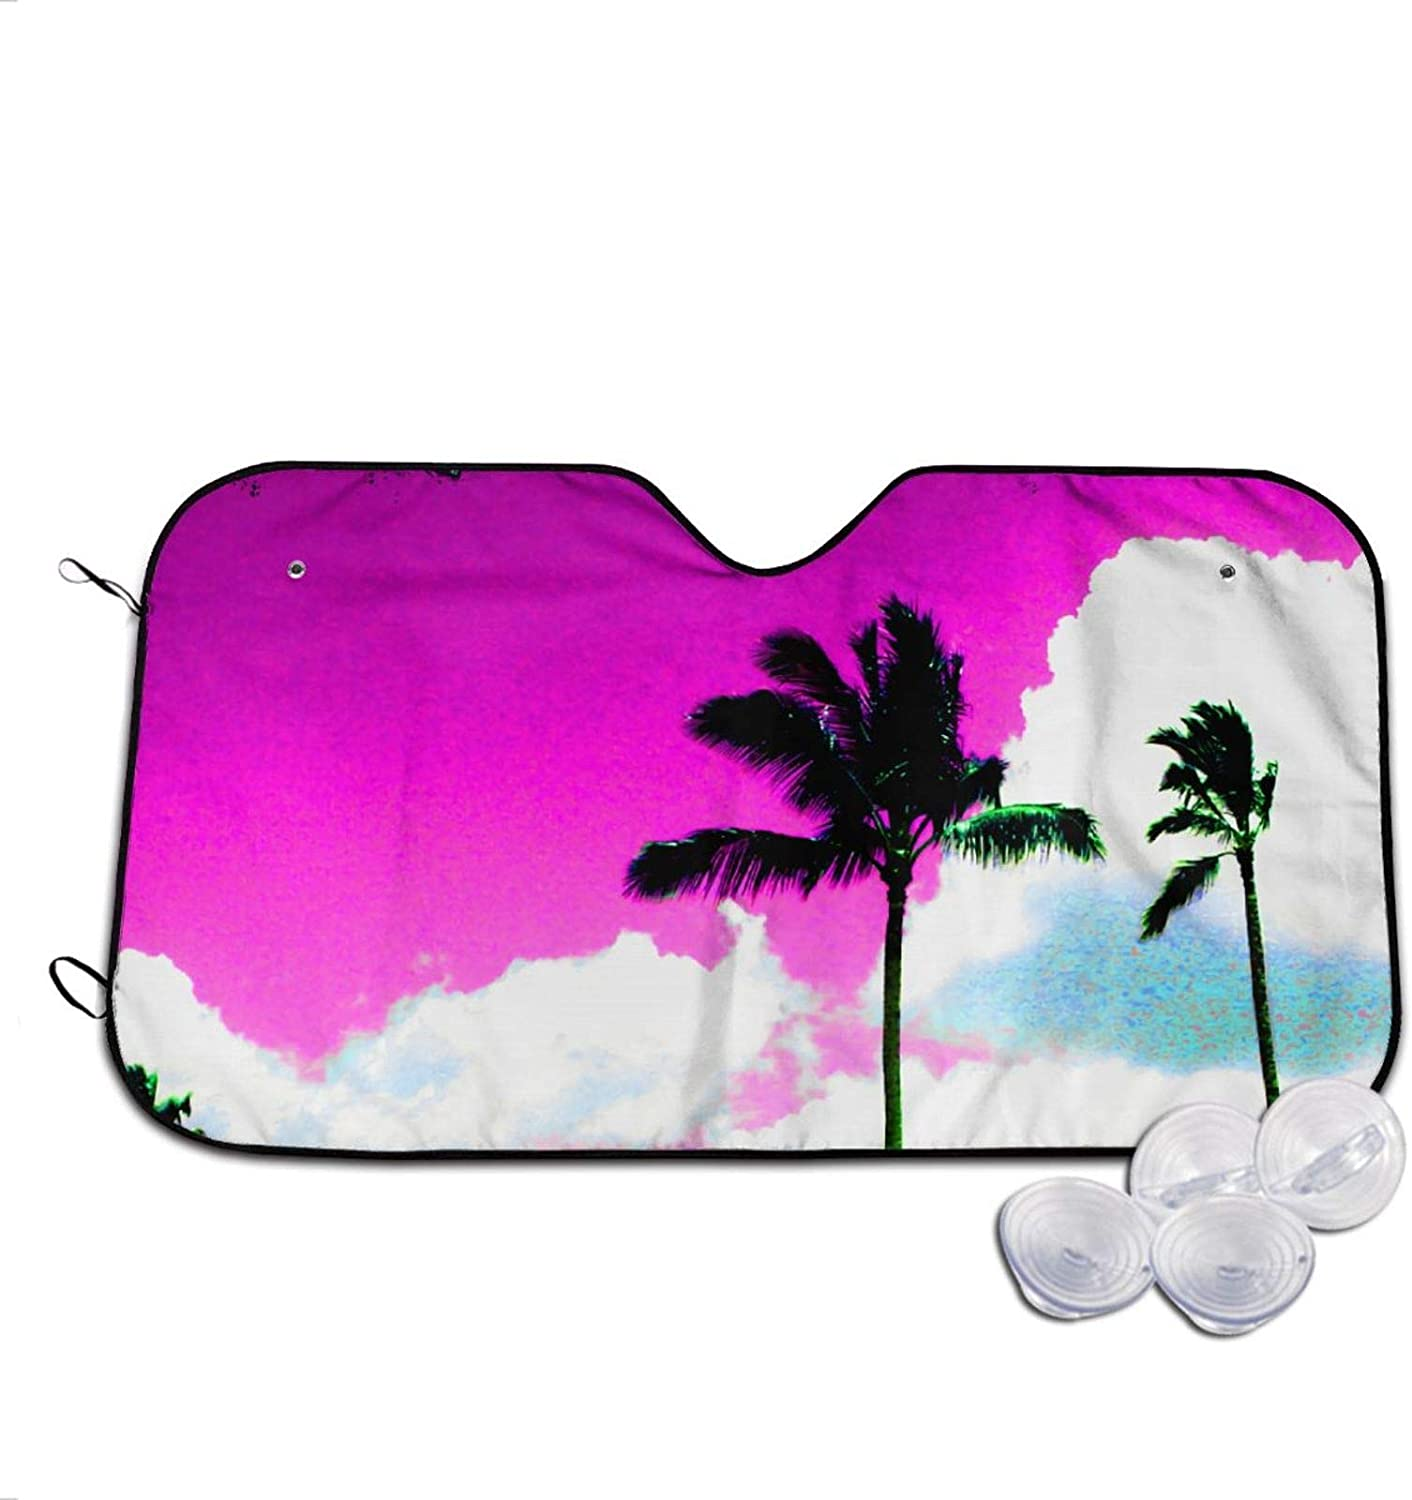 Iration Sample This Car Universal Sunshade to Keep The Vehicle Cool The Best Uv Sunshade Can Protect Your Car from Direct Sunlight Medium